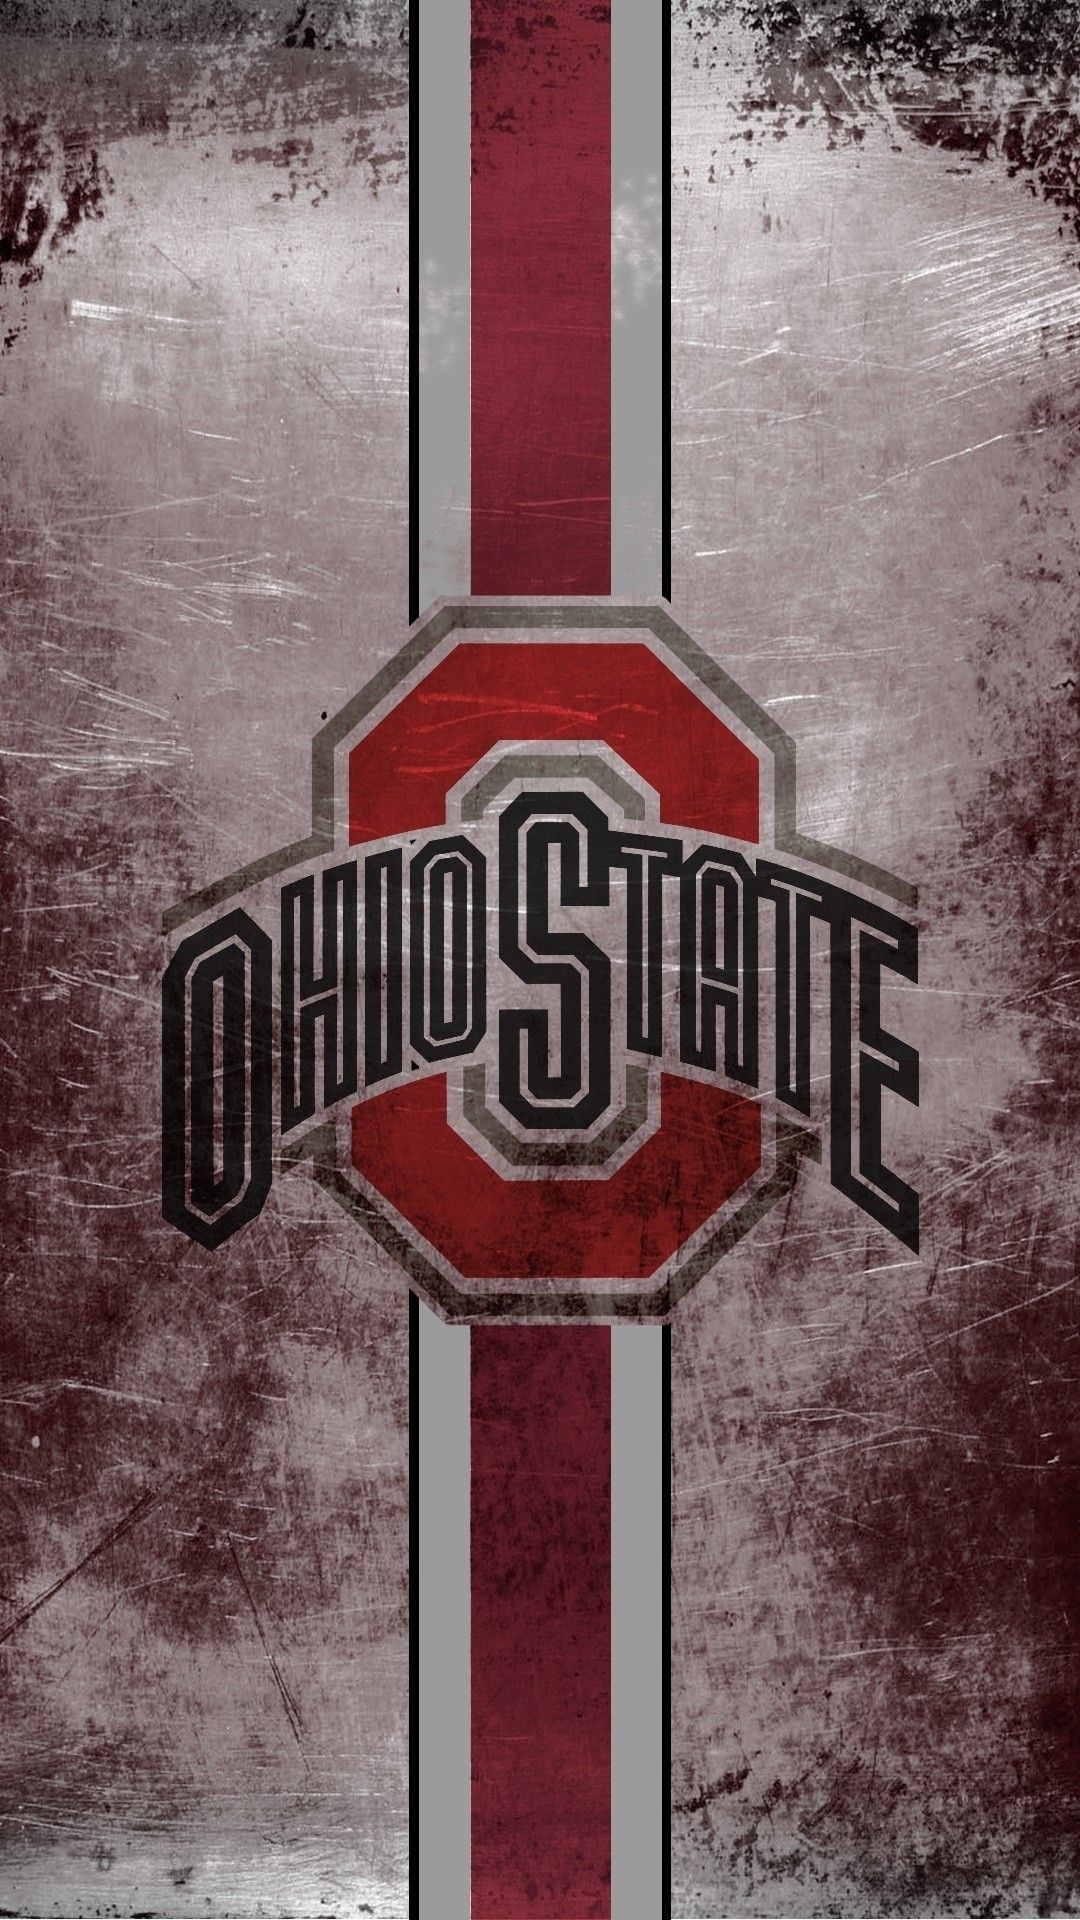 Ohio State Iphone Wallpaper Best Iphone Wallpaper Ohio State Wallpaper Ohio State Buckeyes Football Ohio State Pictures